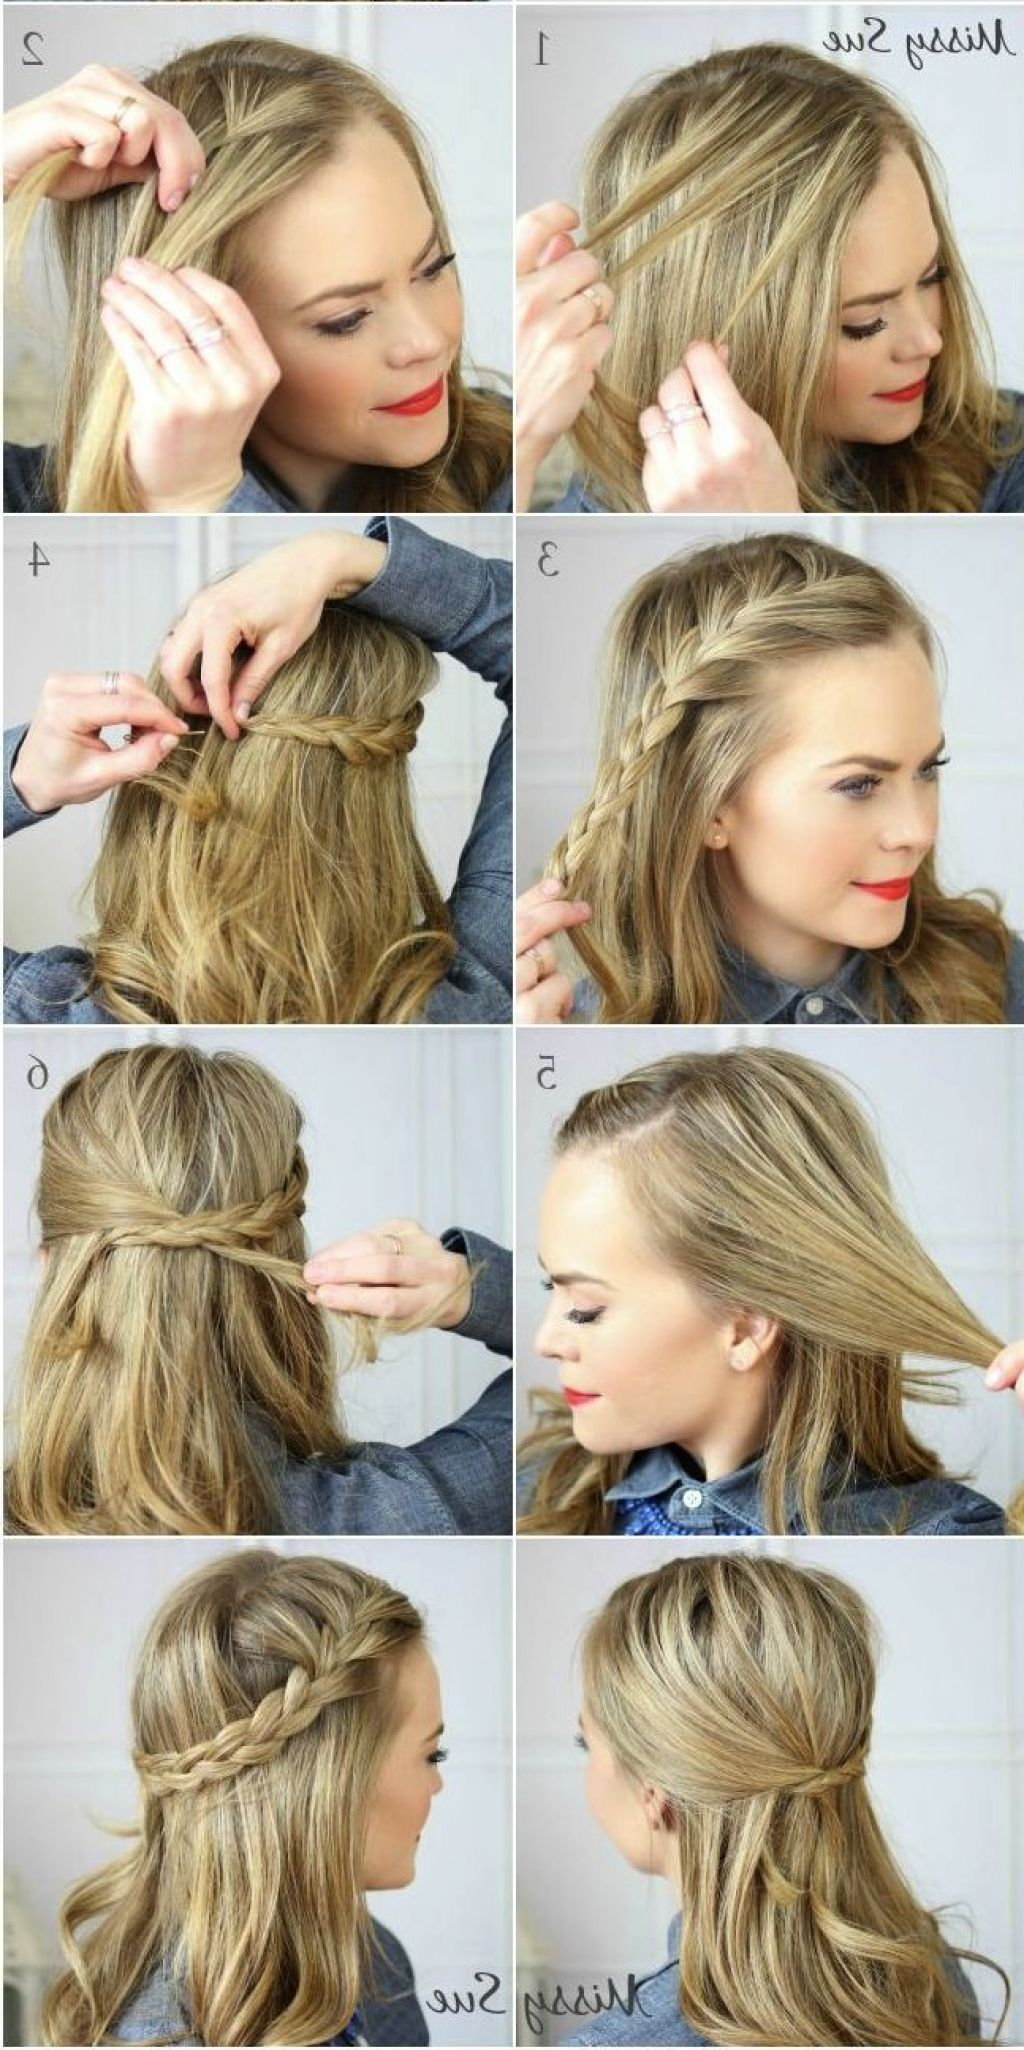 203 Casual Hairstyles For Long Hair Hairstyles 2019 Easy Hairstyles Medium Hair Styles Medium Length Hair Styles